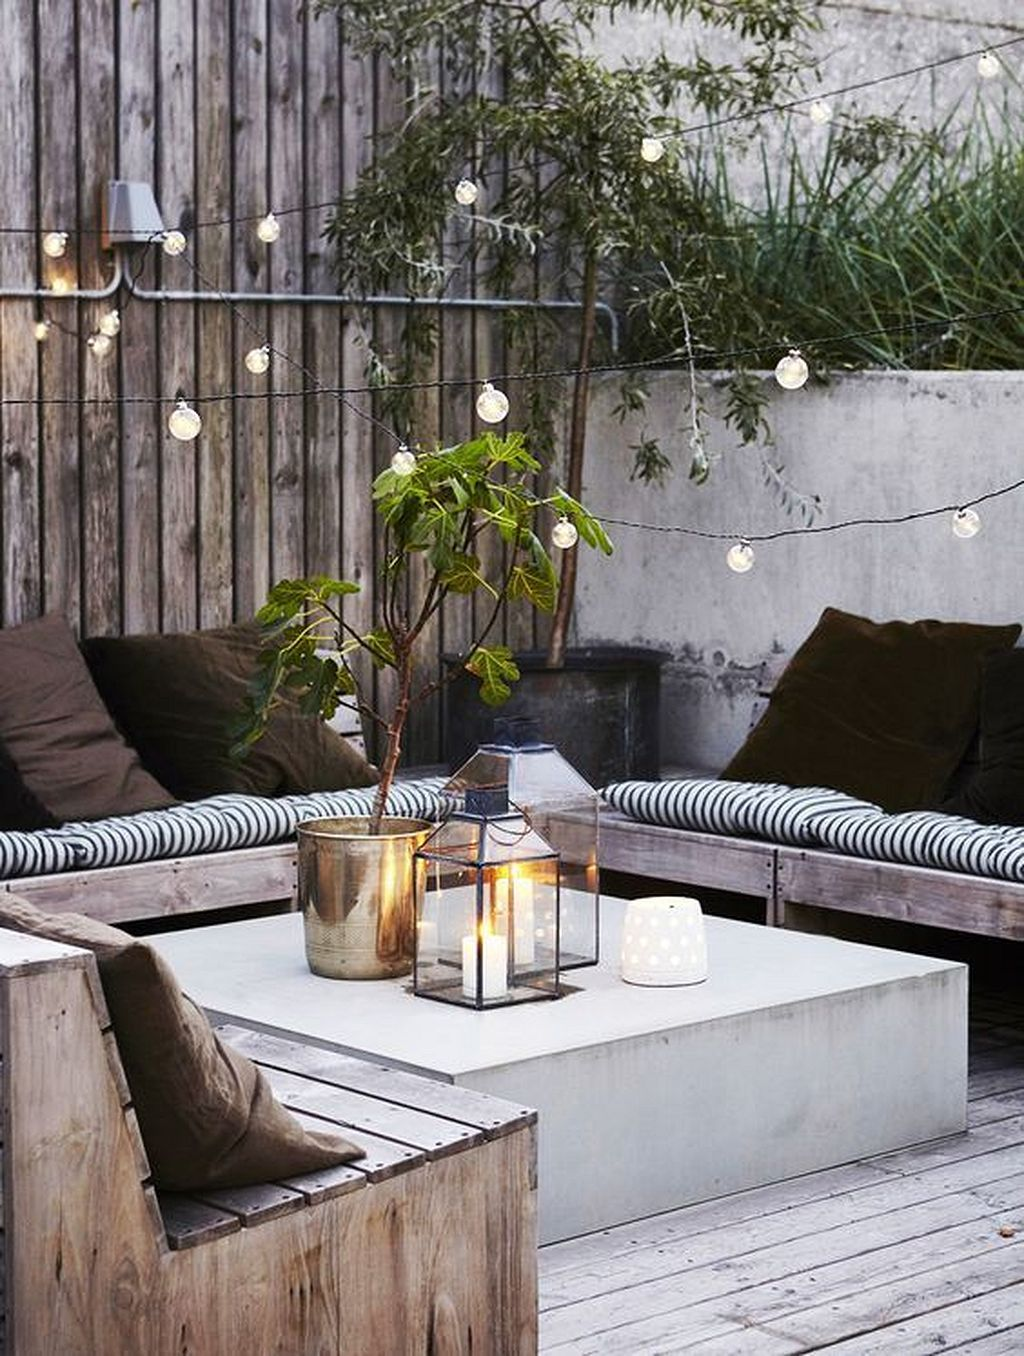 Stunning 30 Incredible Outdoor Living Space Ideas Https Gardenmagz Com 30 Incredible Outdoor Living Space Id Backyard Inspiration Backyard Backyard Lighting